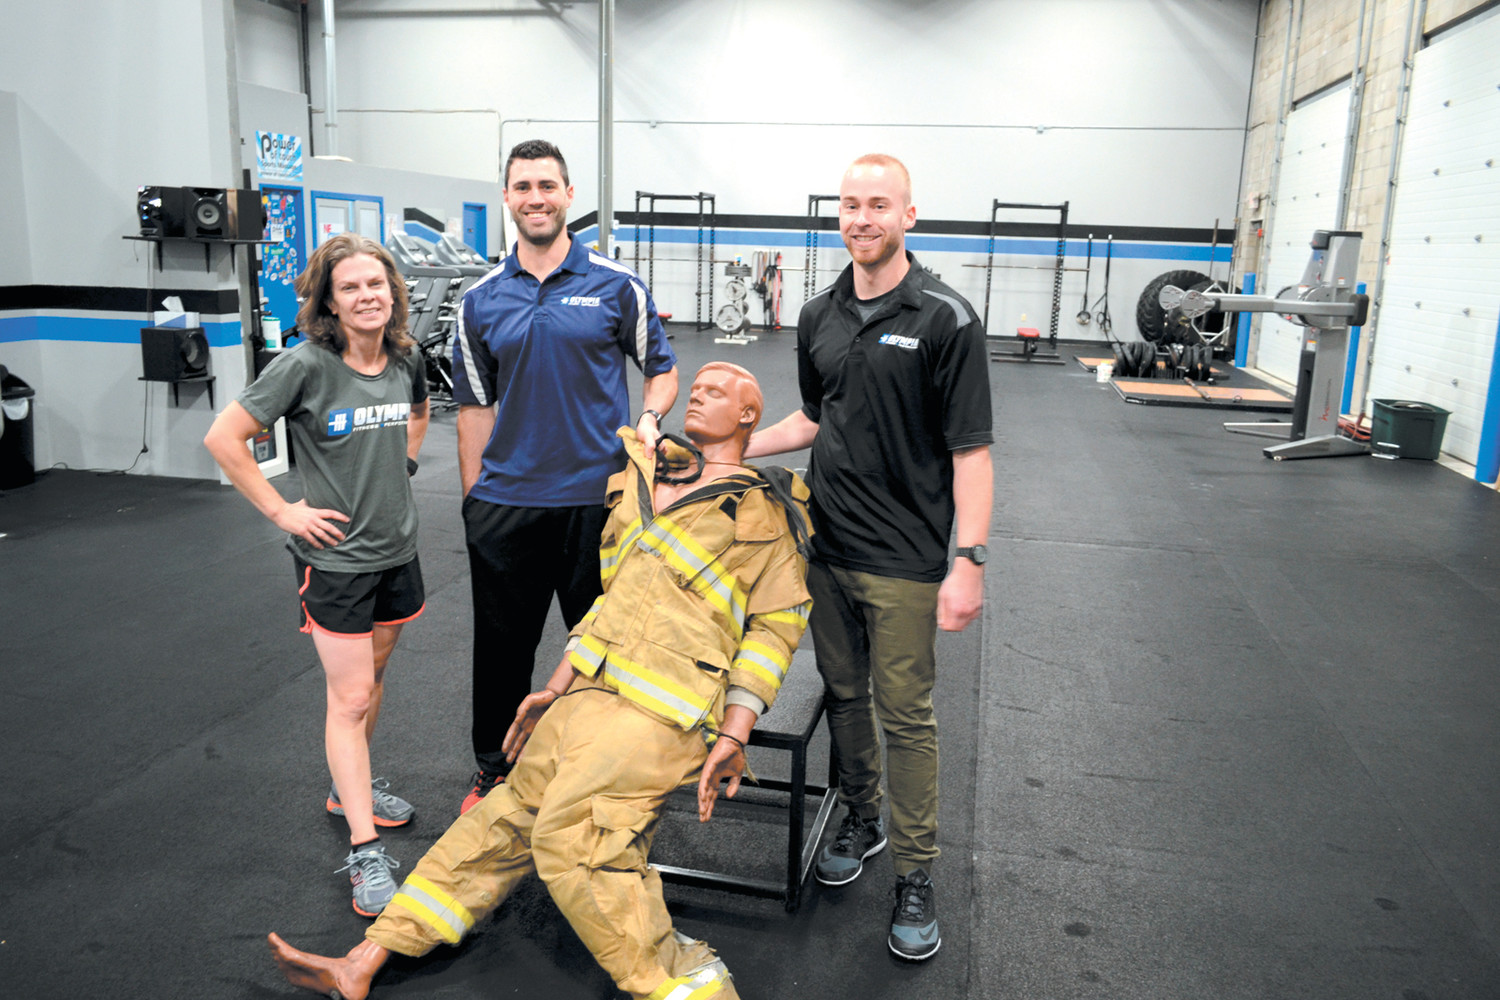 TRAINING FOR DUMMIES: Maura J. Zimmer (NSCA), Olympia Fitness owner Steve Zarriello (CSCS, TPI certified) and Mike Lefebvre pose with their workout dummy, which helps prepare potential firefighter recruits for the final stage of the PPA physical fitness examination.